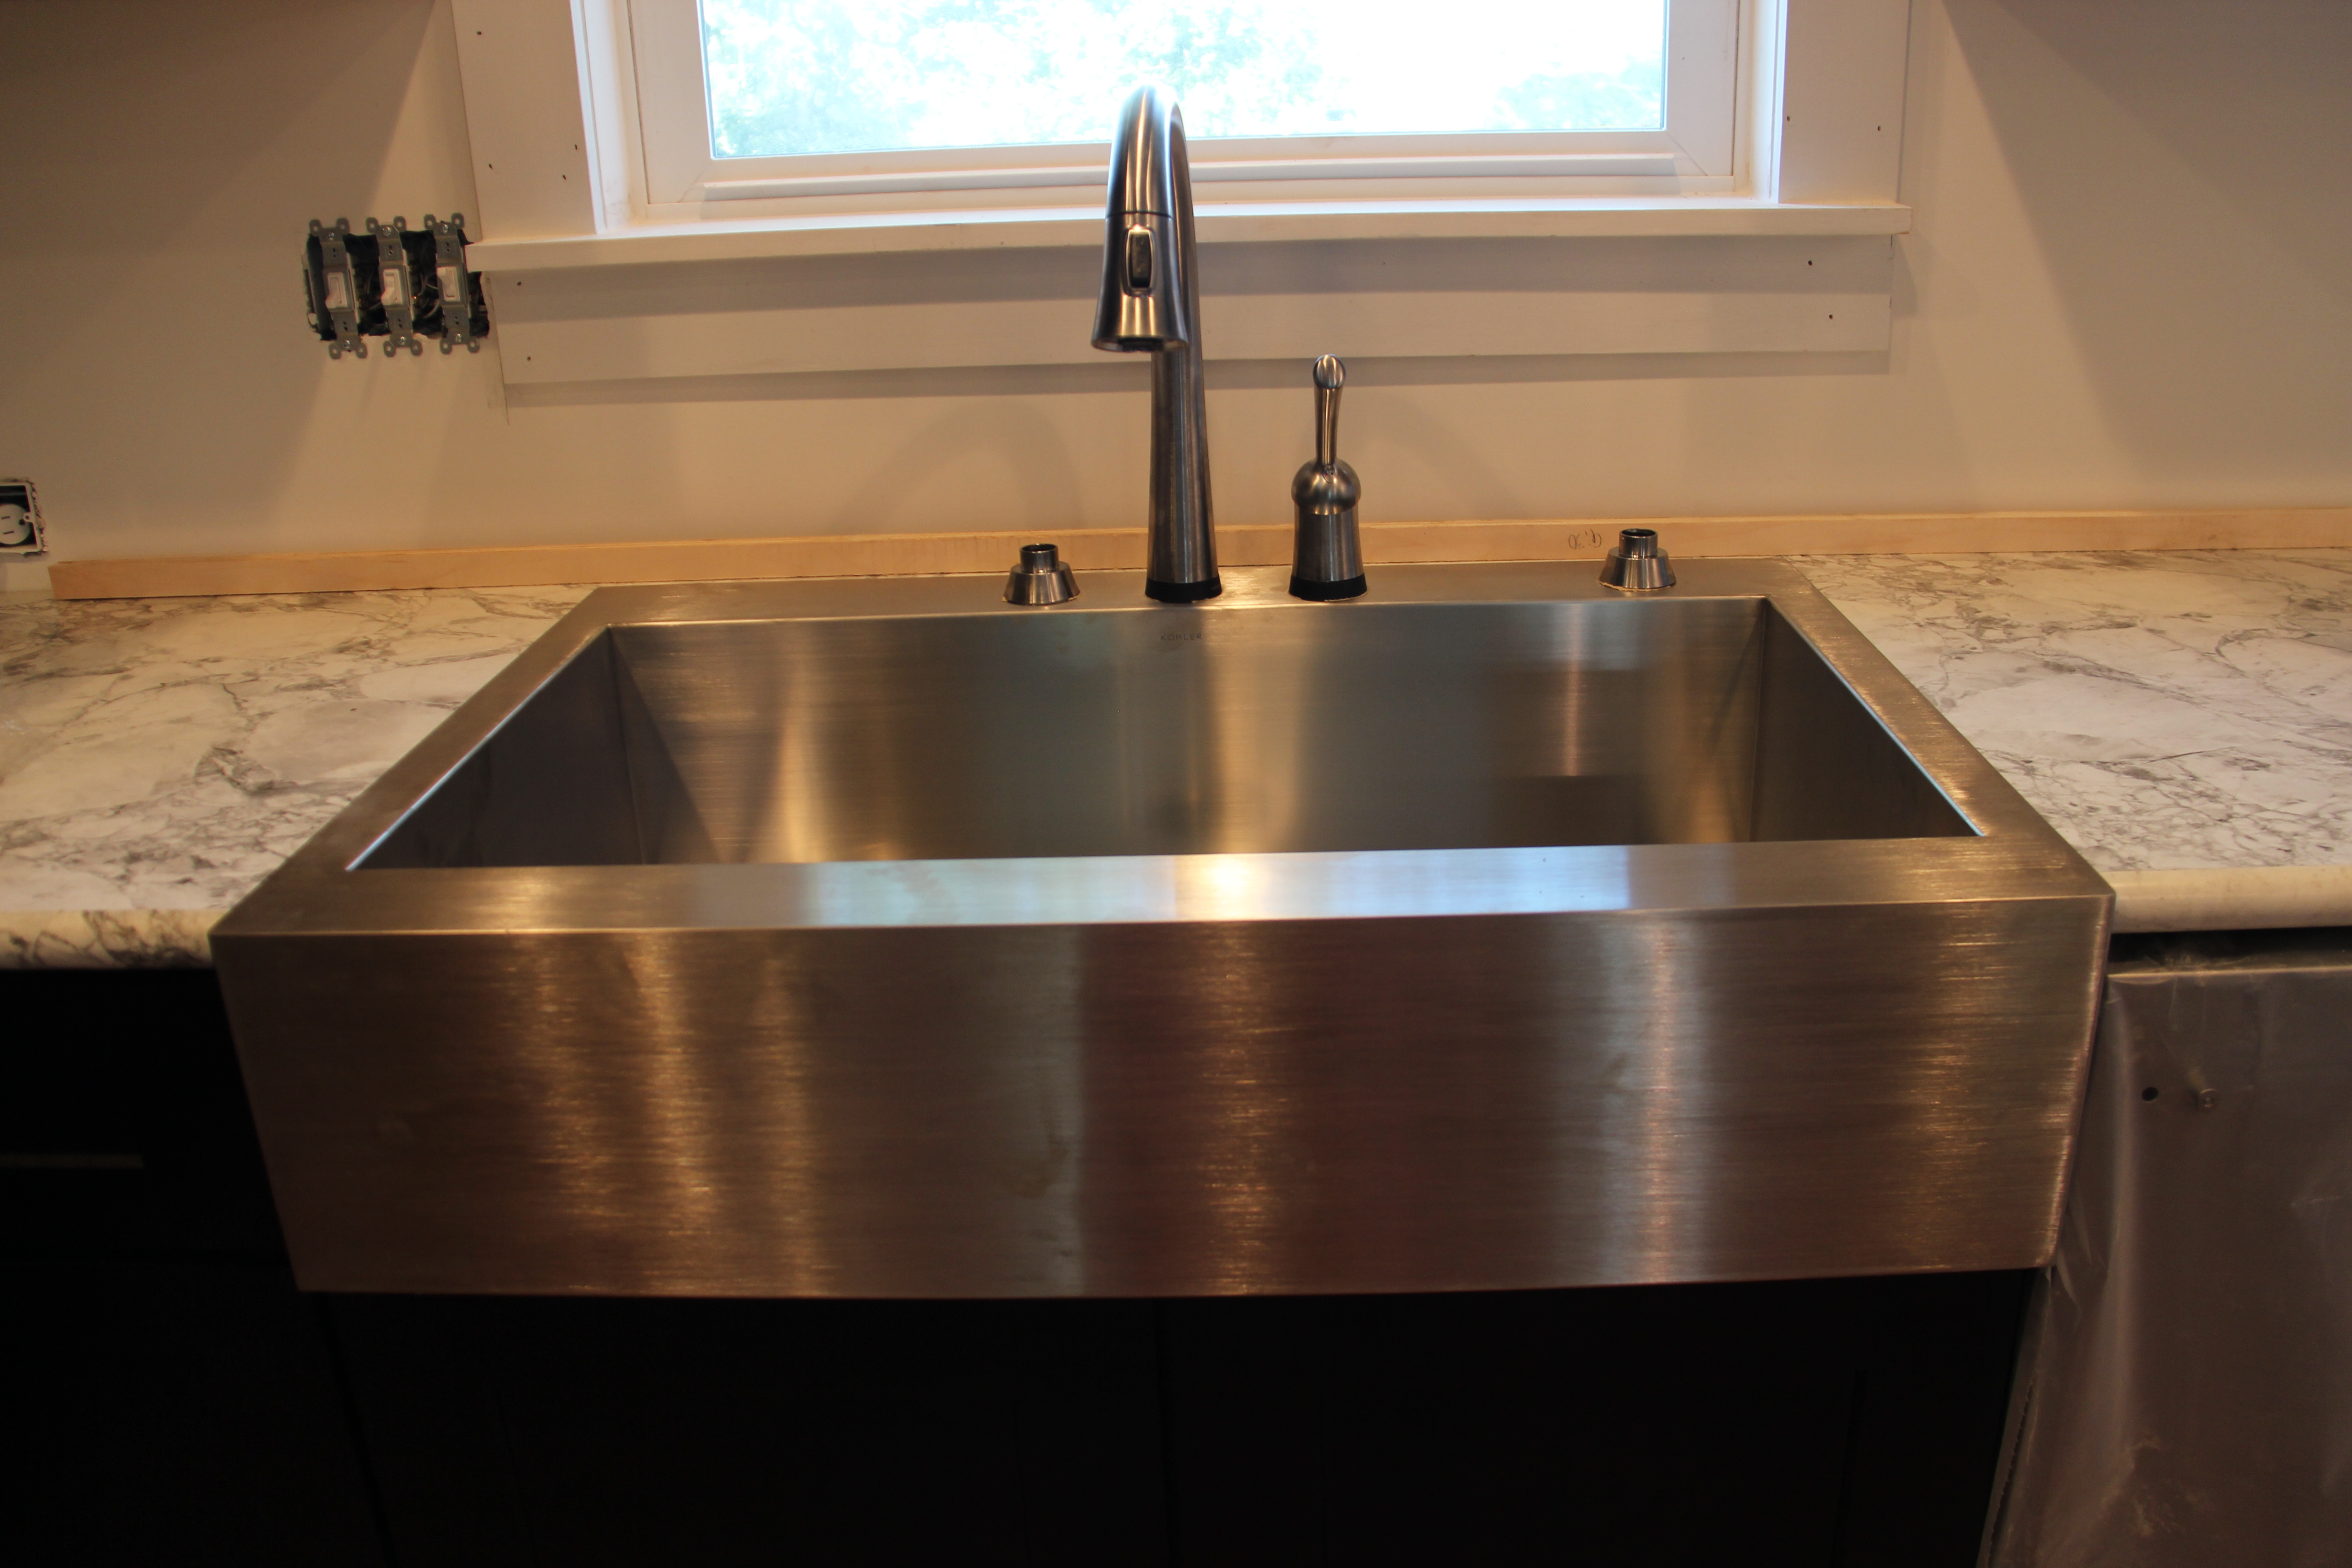 Rectangle Silver Apron Sink Plus Black Faucet Before The Window For Kitchen Decor Ideas